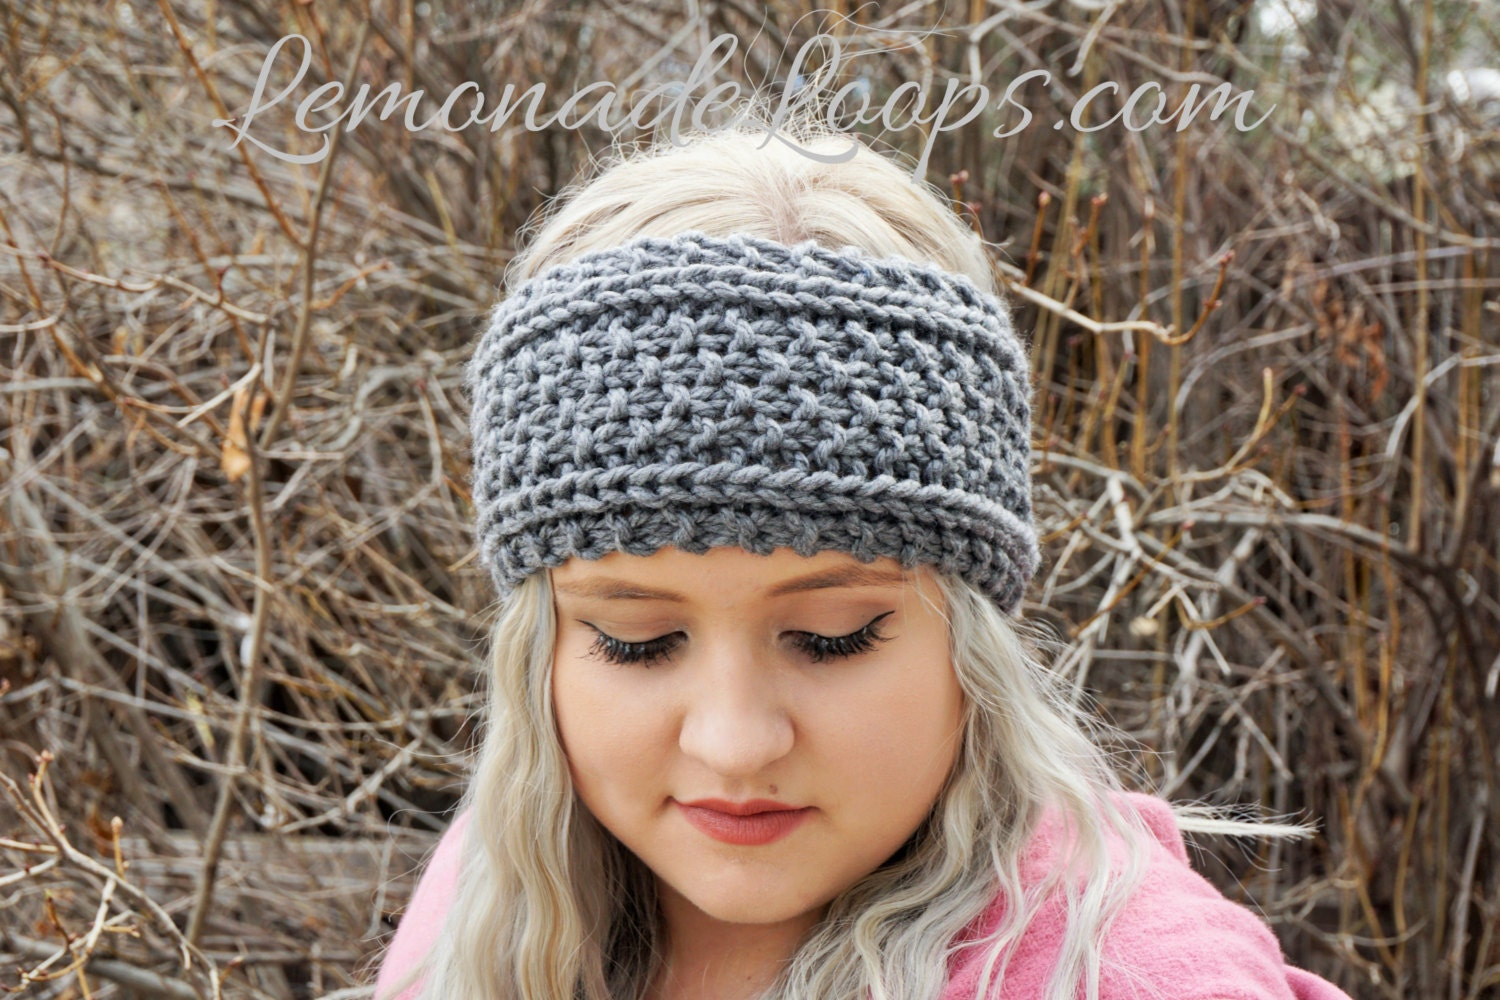 Knit Pattern Aemilia Headband Earwarmer Beginner Level in 7